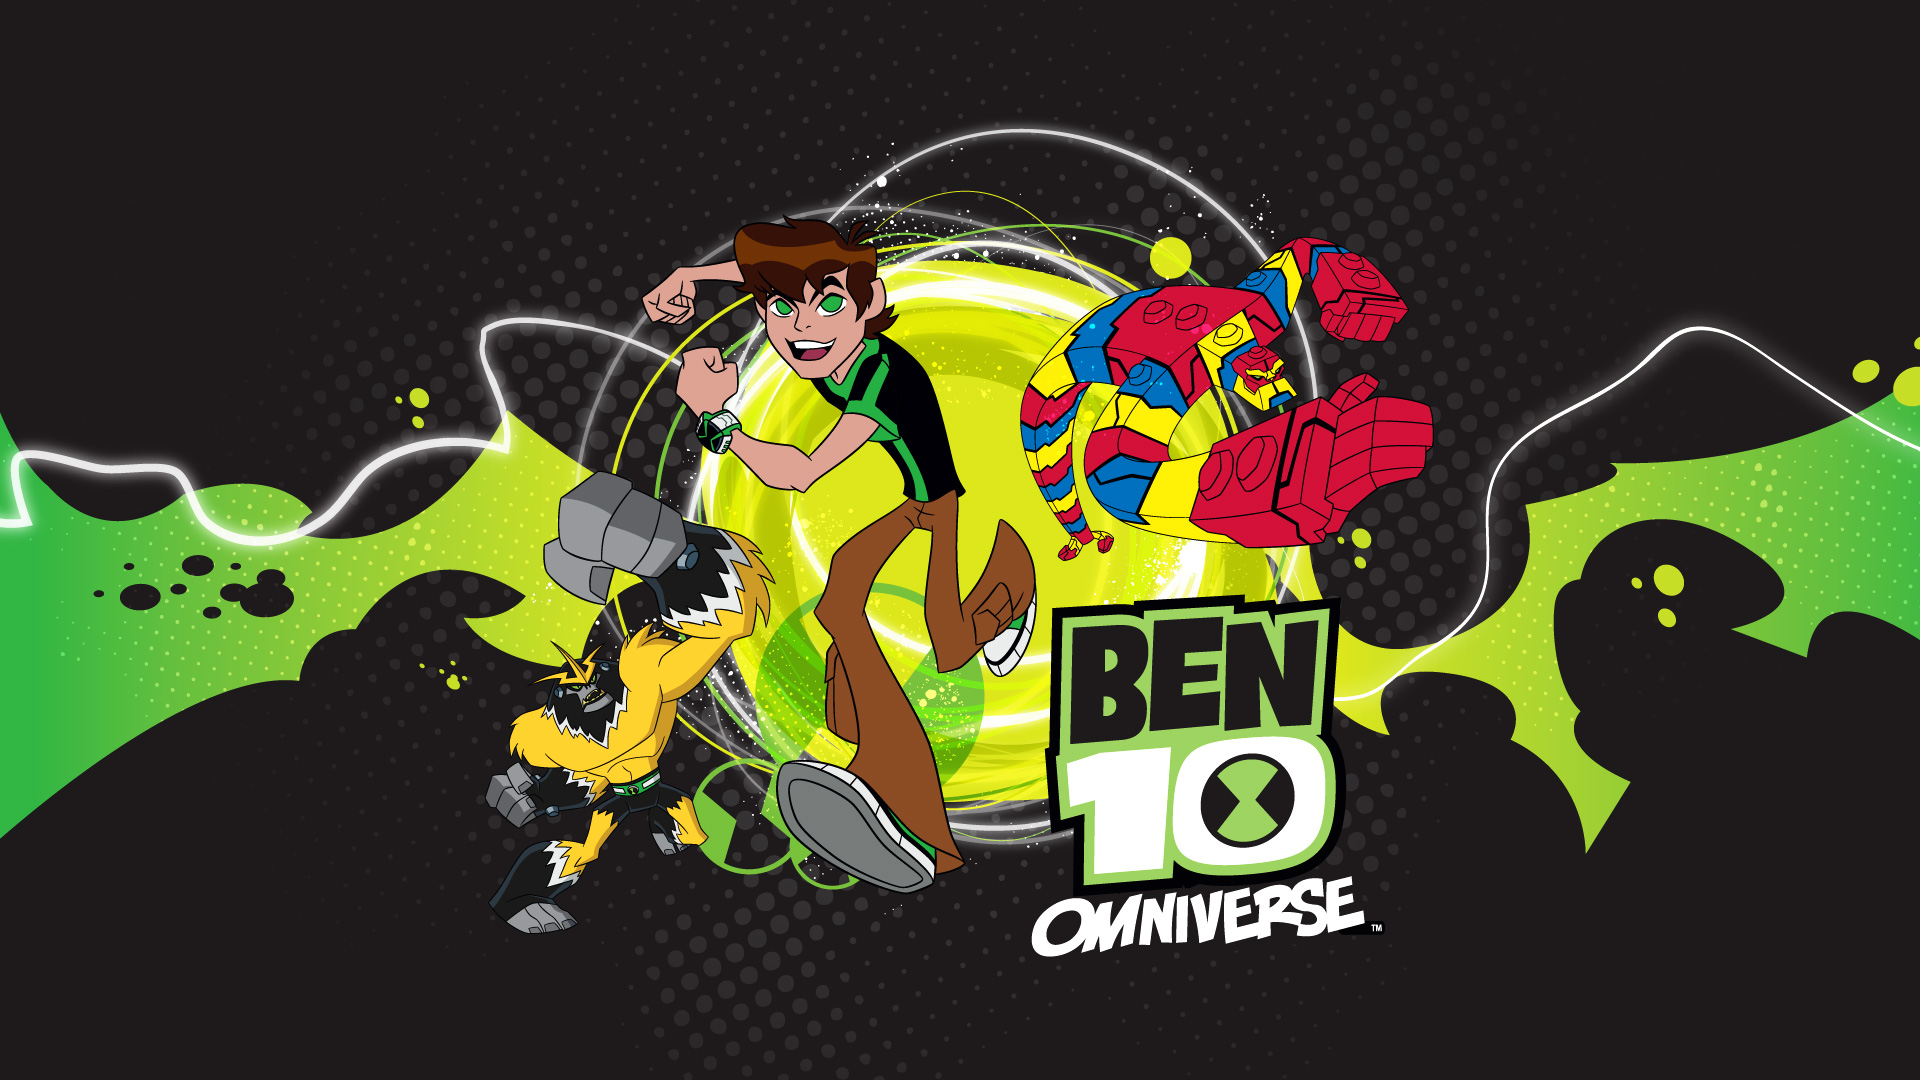 Ben 10 omniverse full hd wallpaper and background image 1920x1080 video game ben 10 omniverse wallpaper voltagebd Image collections